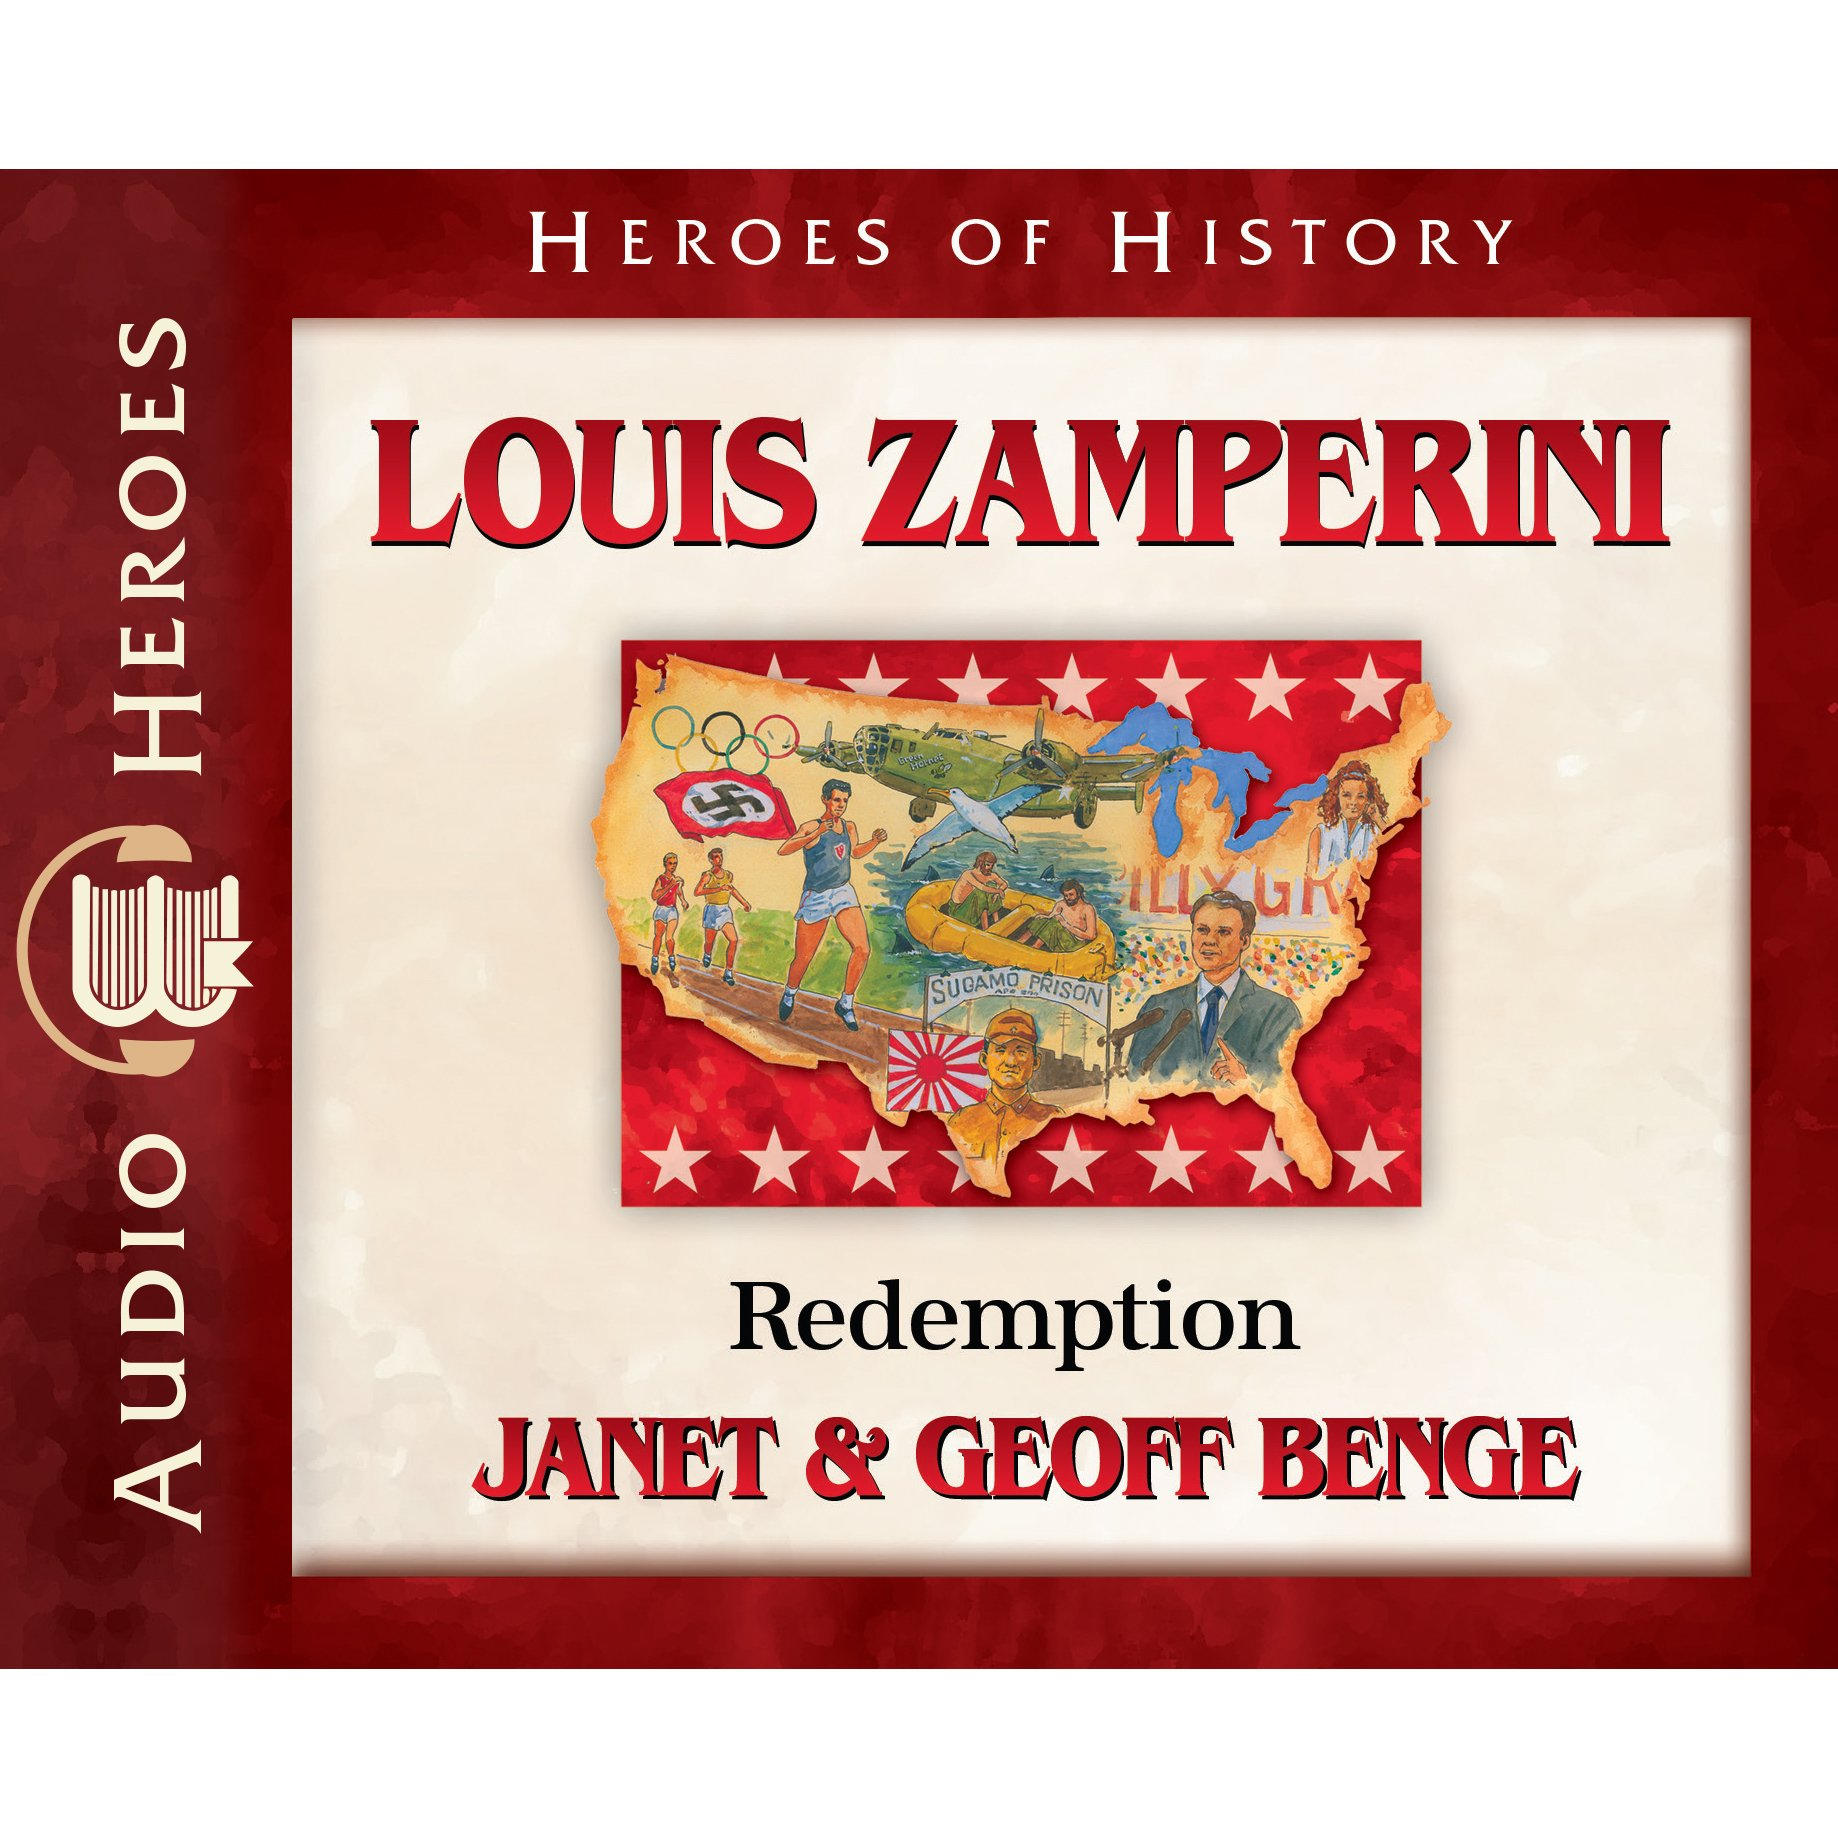 Louis Zamperini Audiobook: Redemption (Heroes of History)